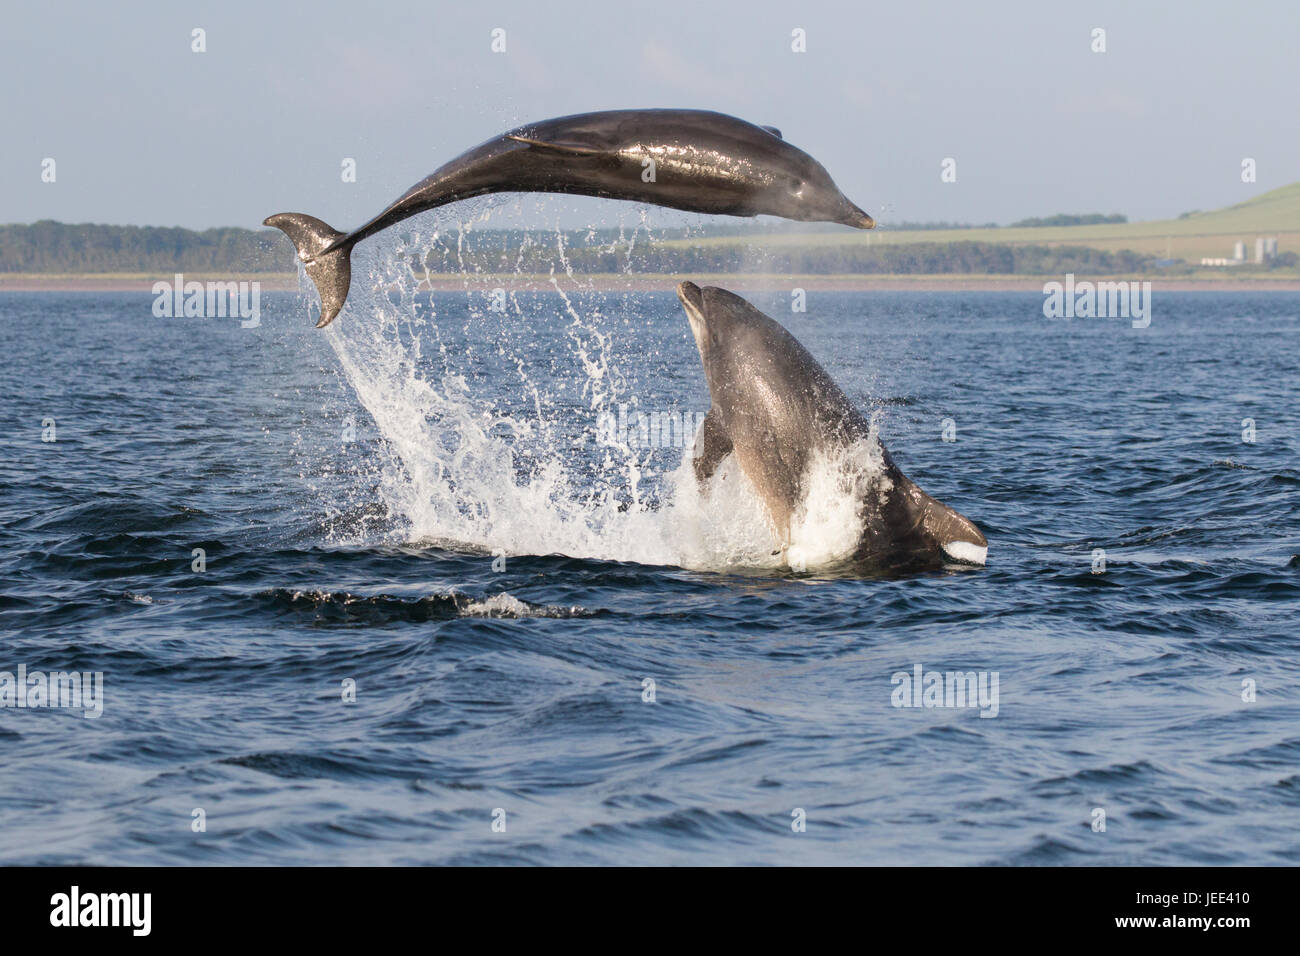 Two adult bottlenose dolphins (Tursiops truncatus) breaching/ leaping in the Moray Firth, Chanonry Point, Scotland, - Stock Image